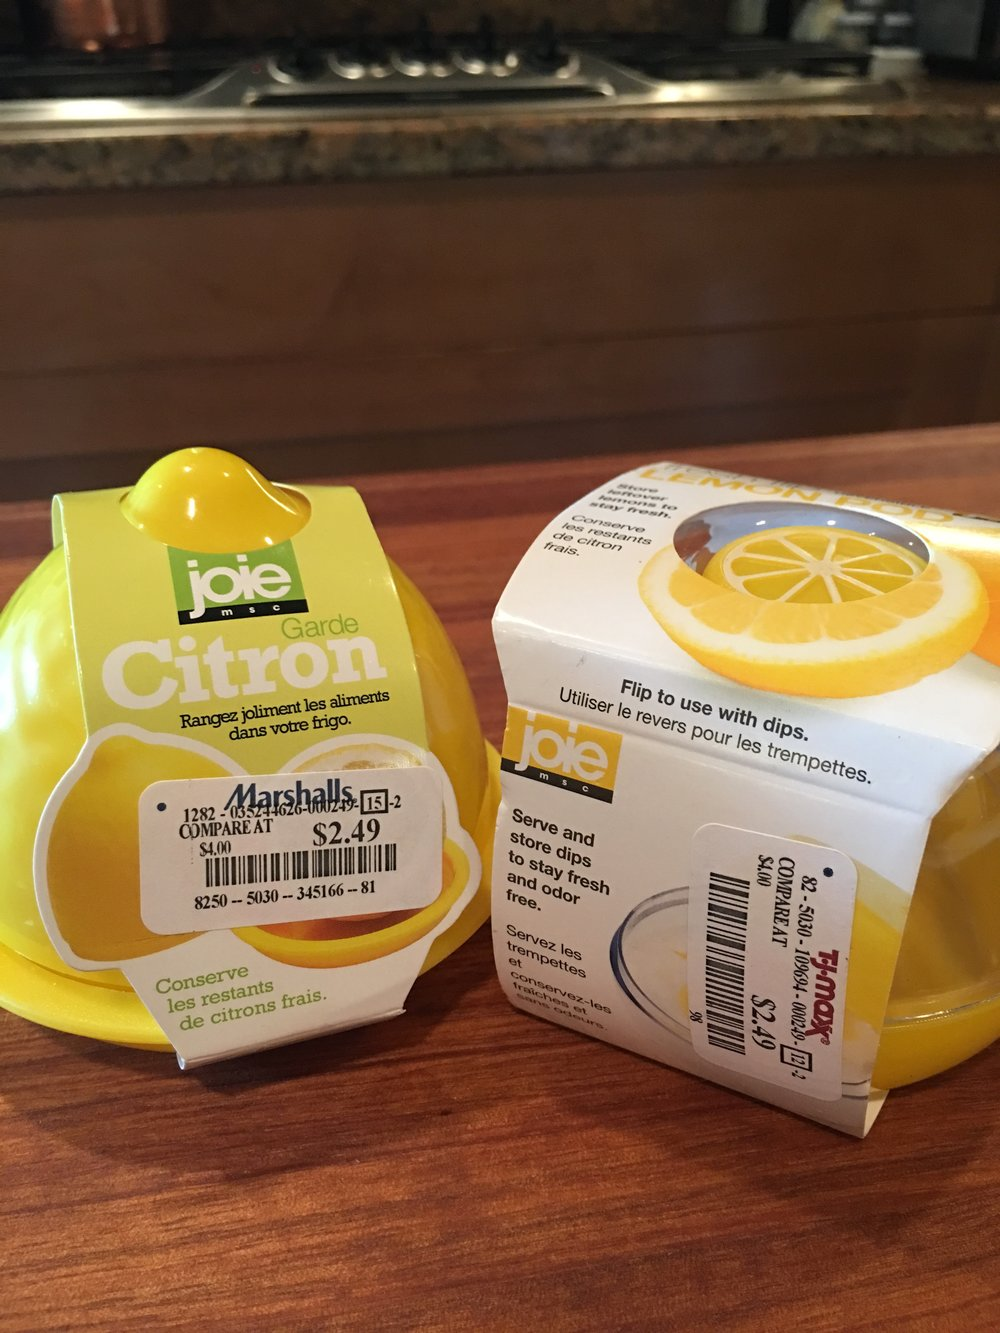 Lemon Pods are just $2.49 at Marshalls and TJ Maxx!